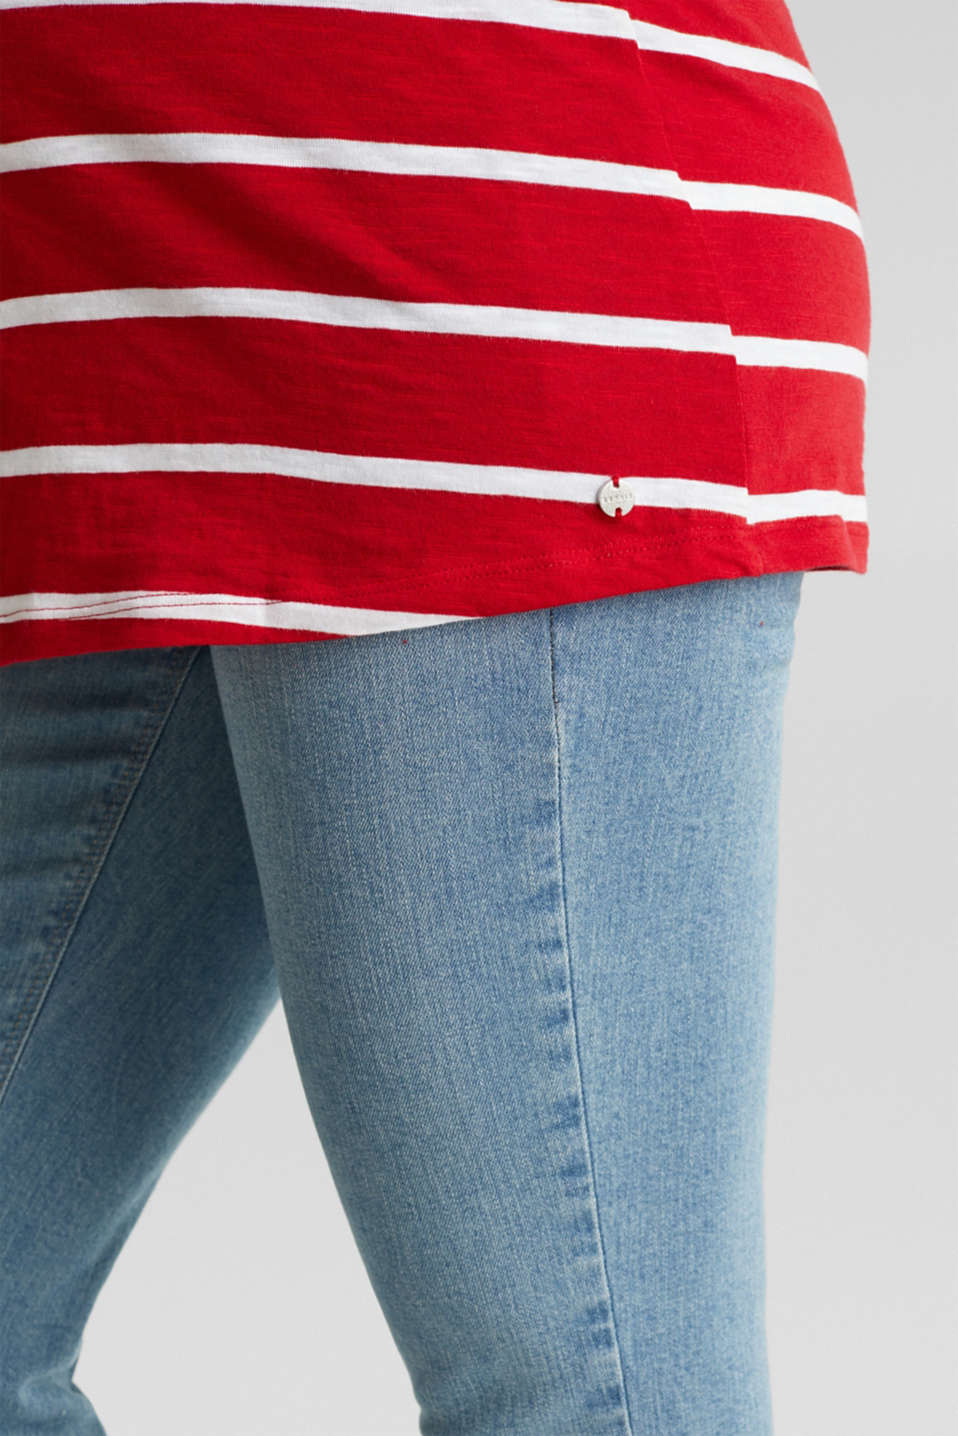 T-shirt with stripes, 100% cotton, LCRED, detail image number 5